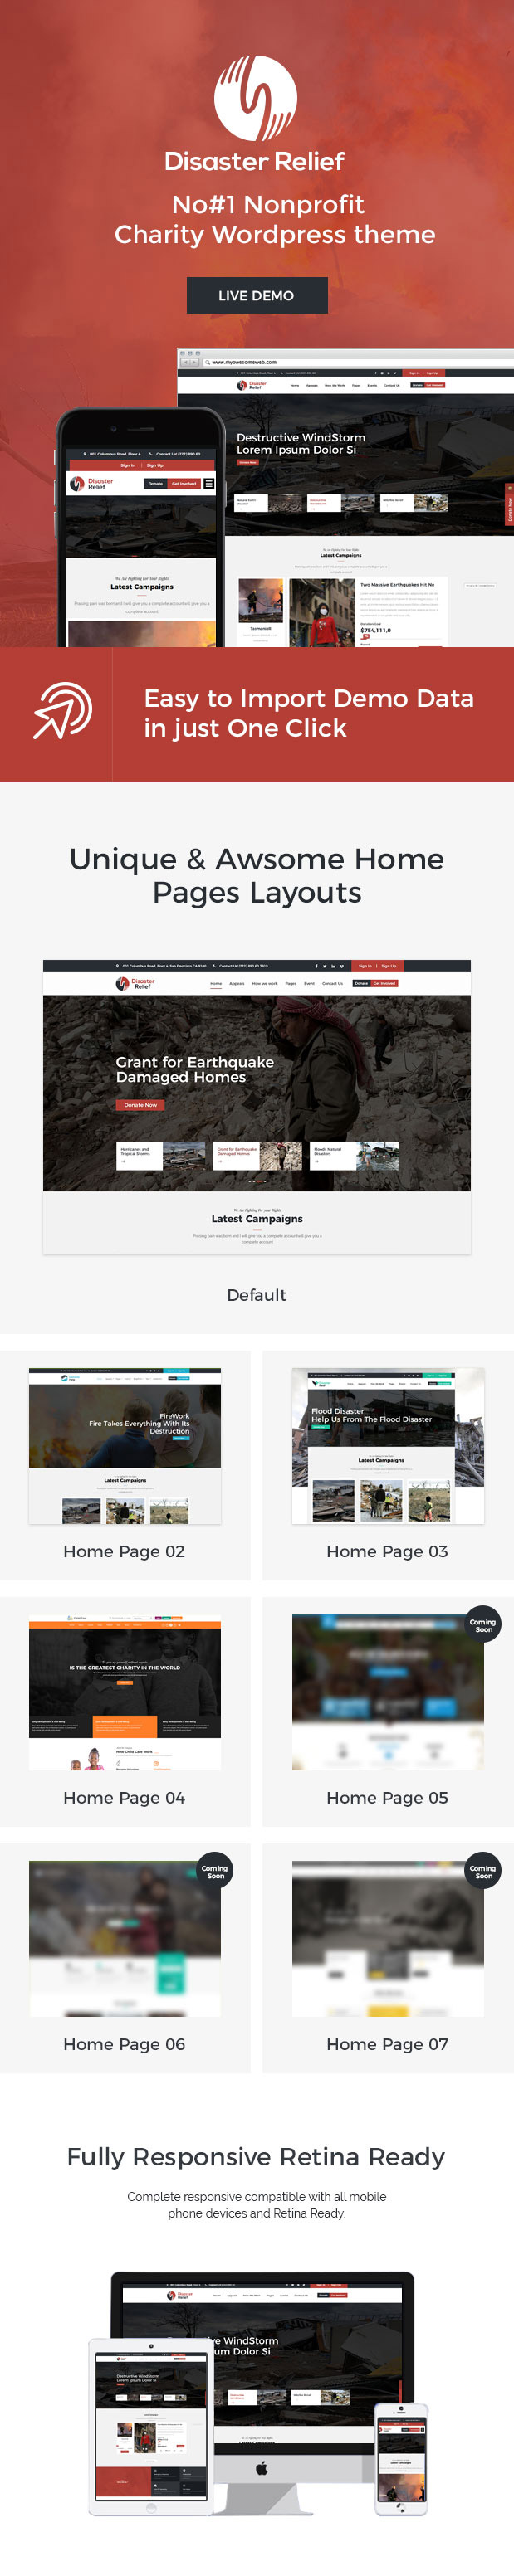 Disaster relief Wordpress Theme Features